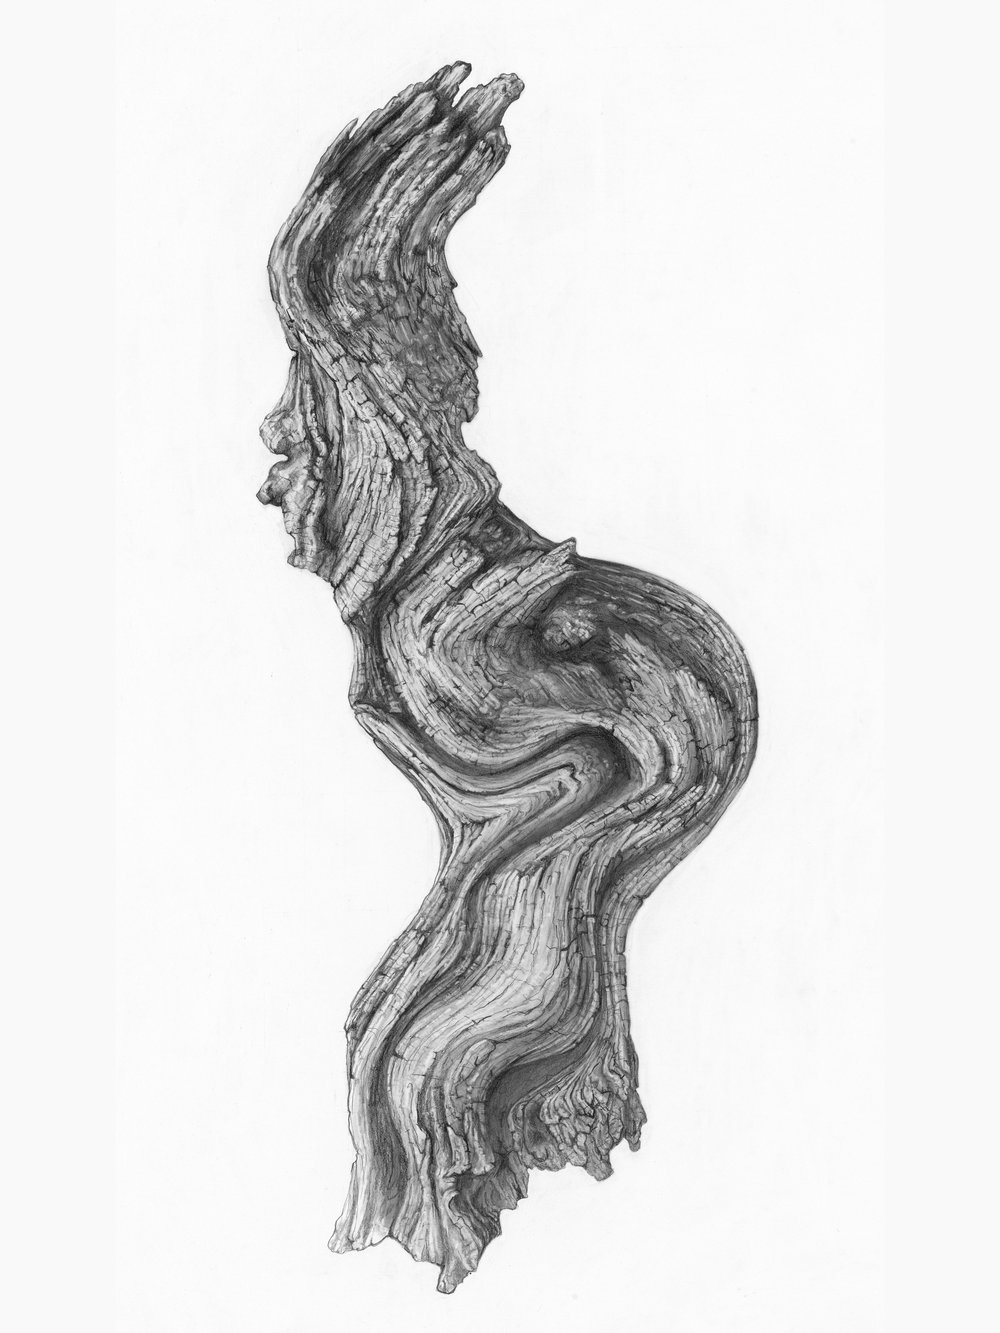 03_Petecia La Fawnhawk_Wise Old Medicine Woman (Driftwood)_graphite on paper_ 40 x 30 (1).jpg